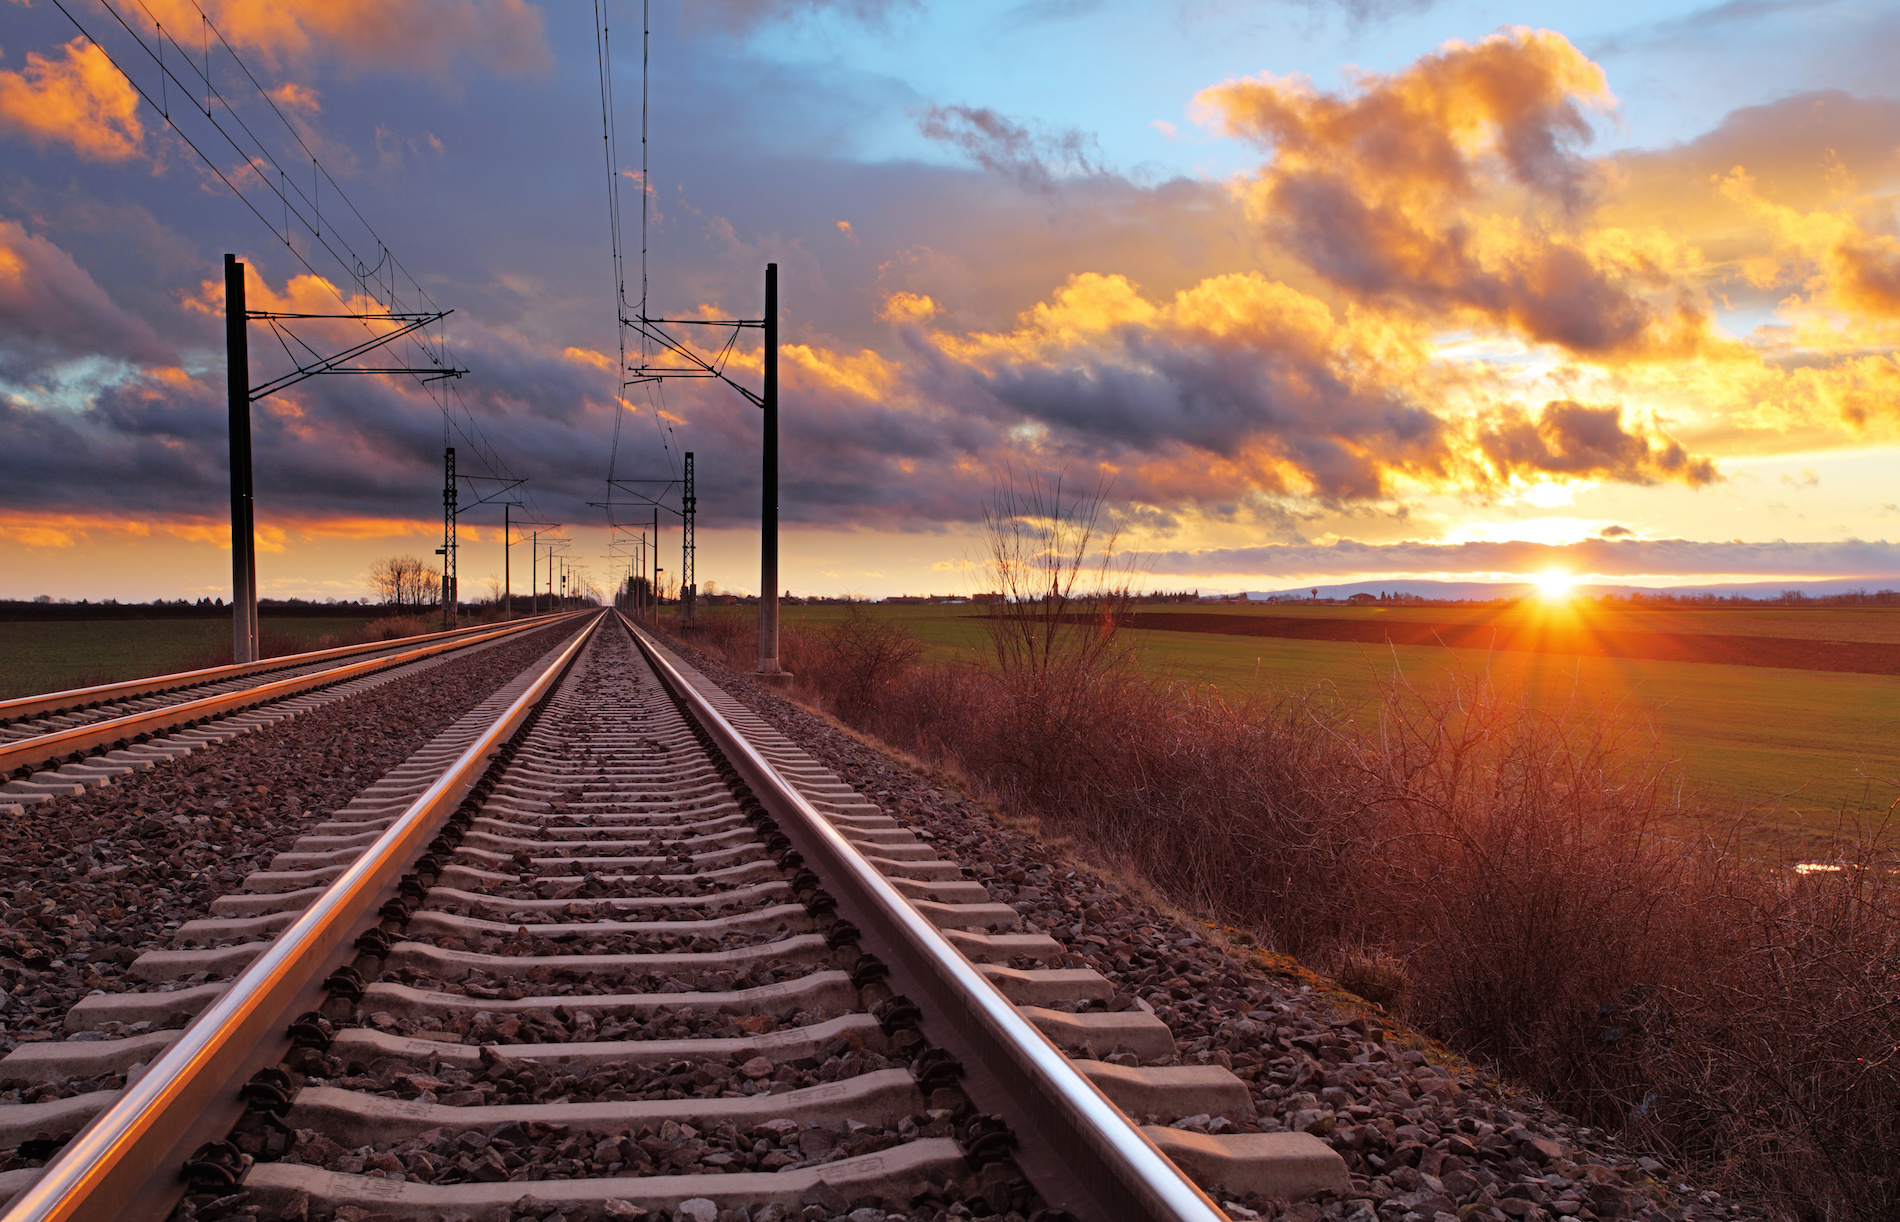 orange-sunset-in-low-clouds-over-railroad.jpeg